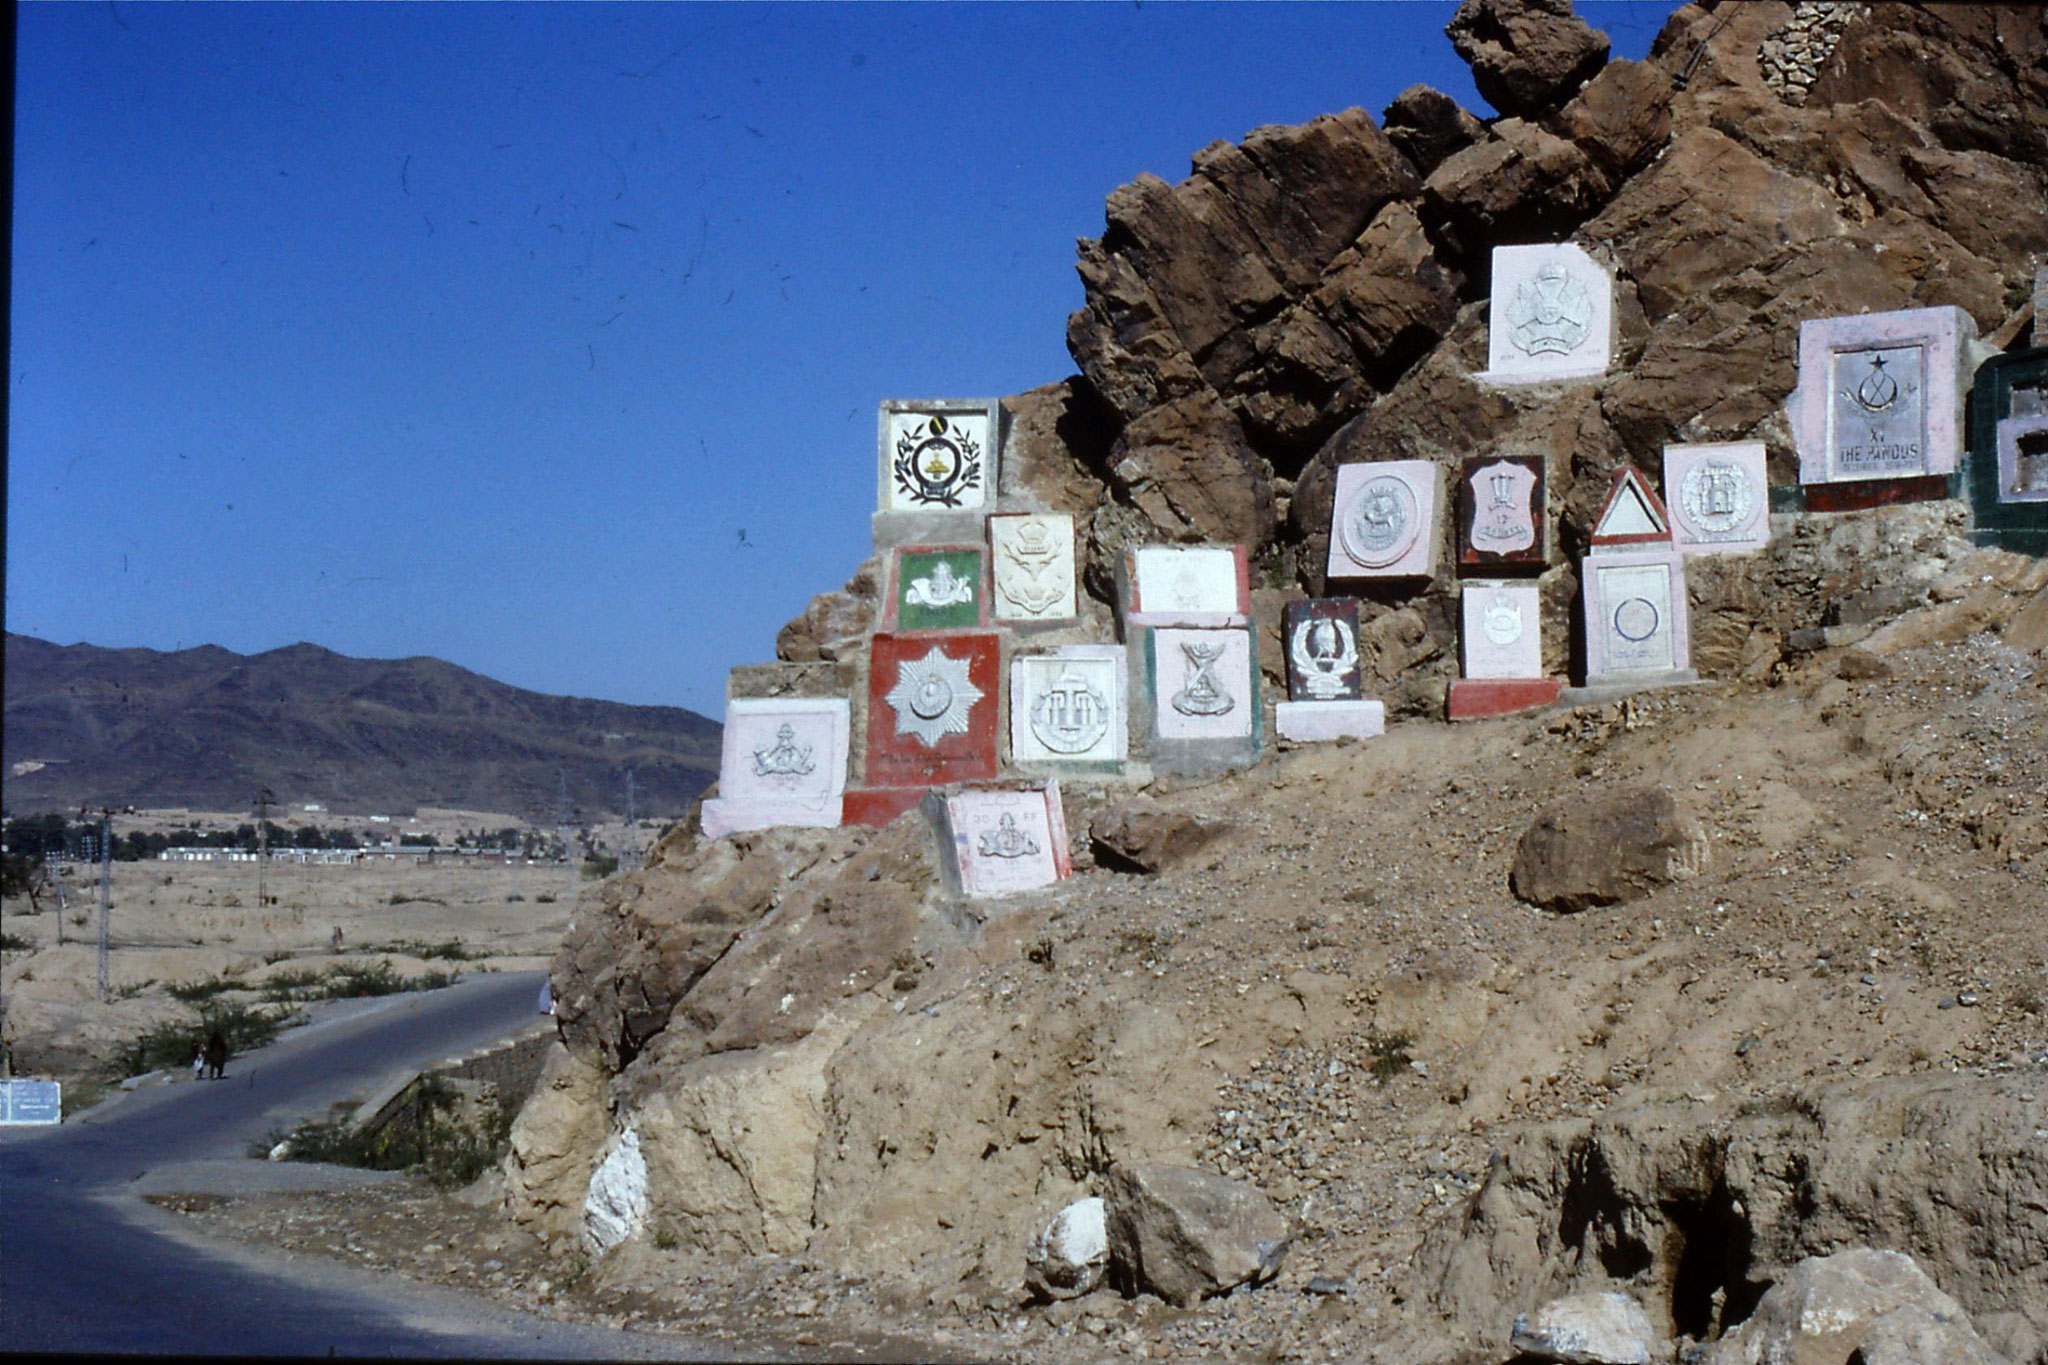 6/11/1989: 19: Khyber Pass outside Landi Kotal